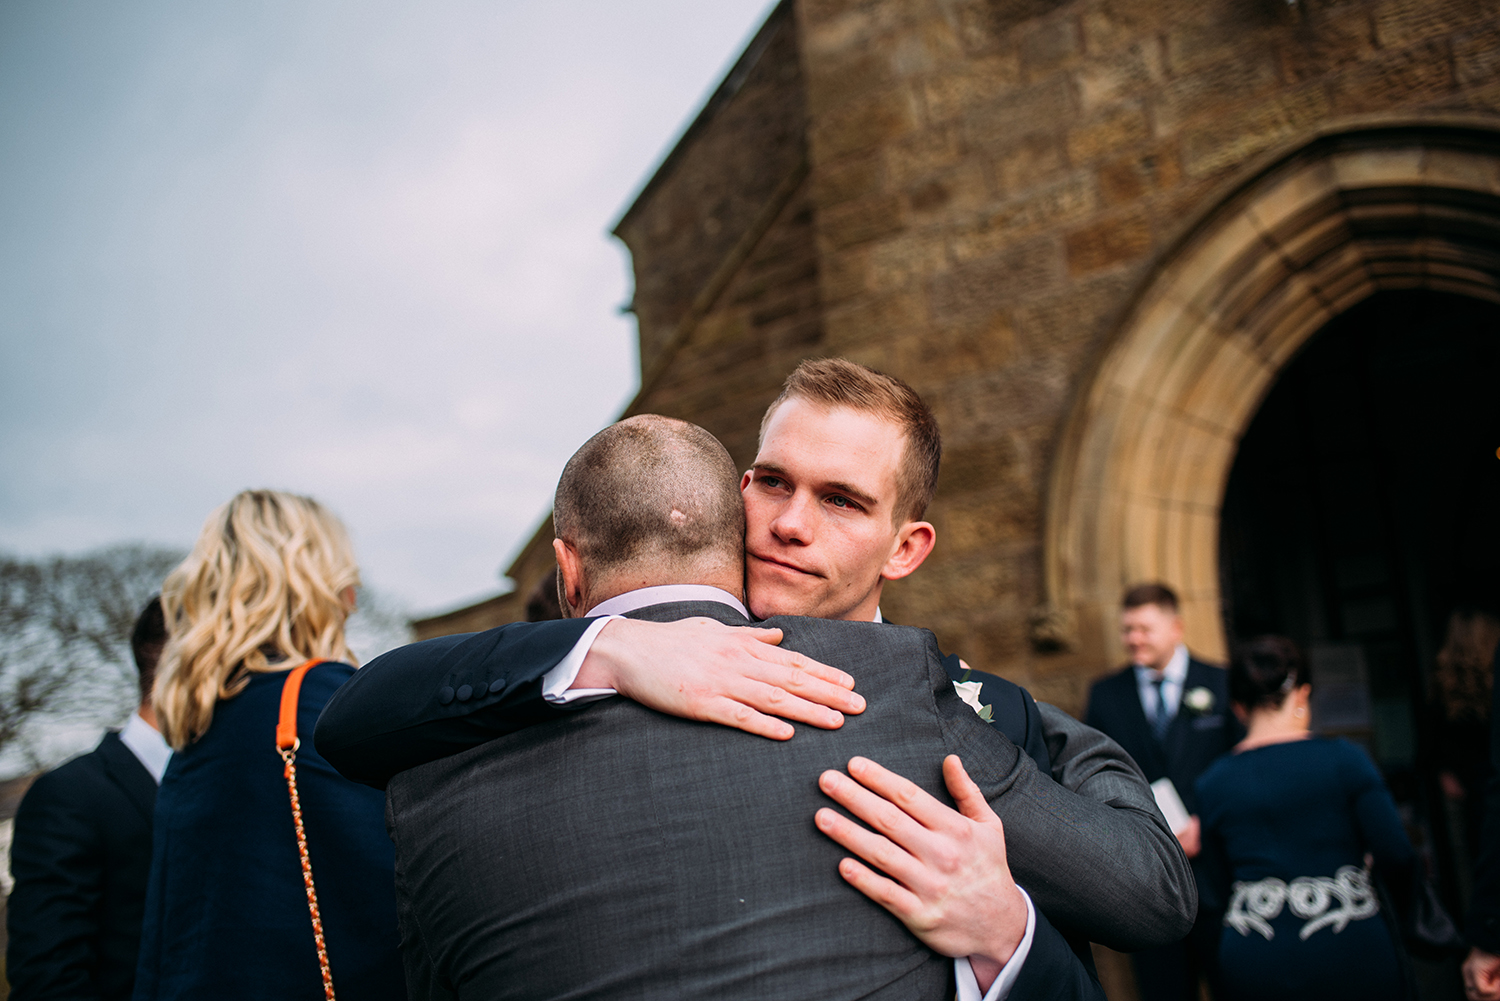 Groom hugging friend